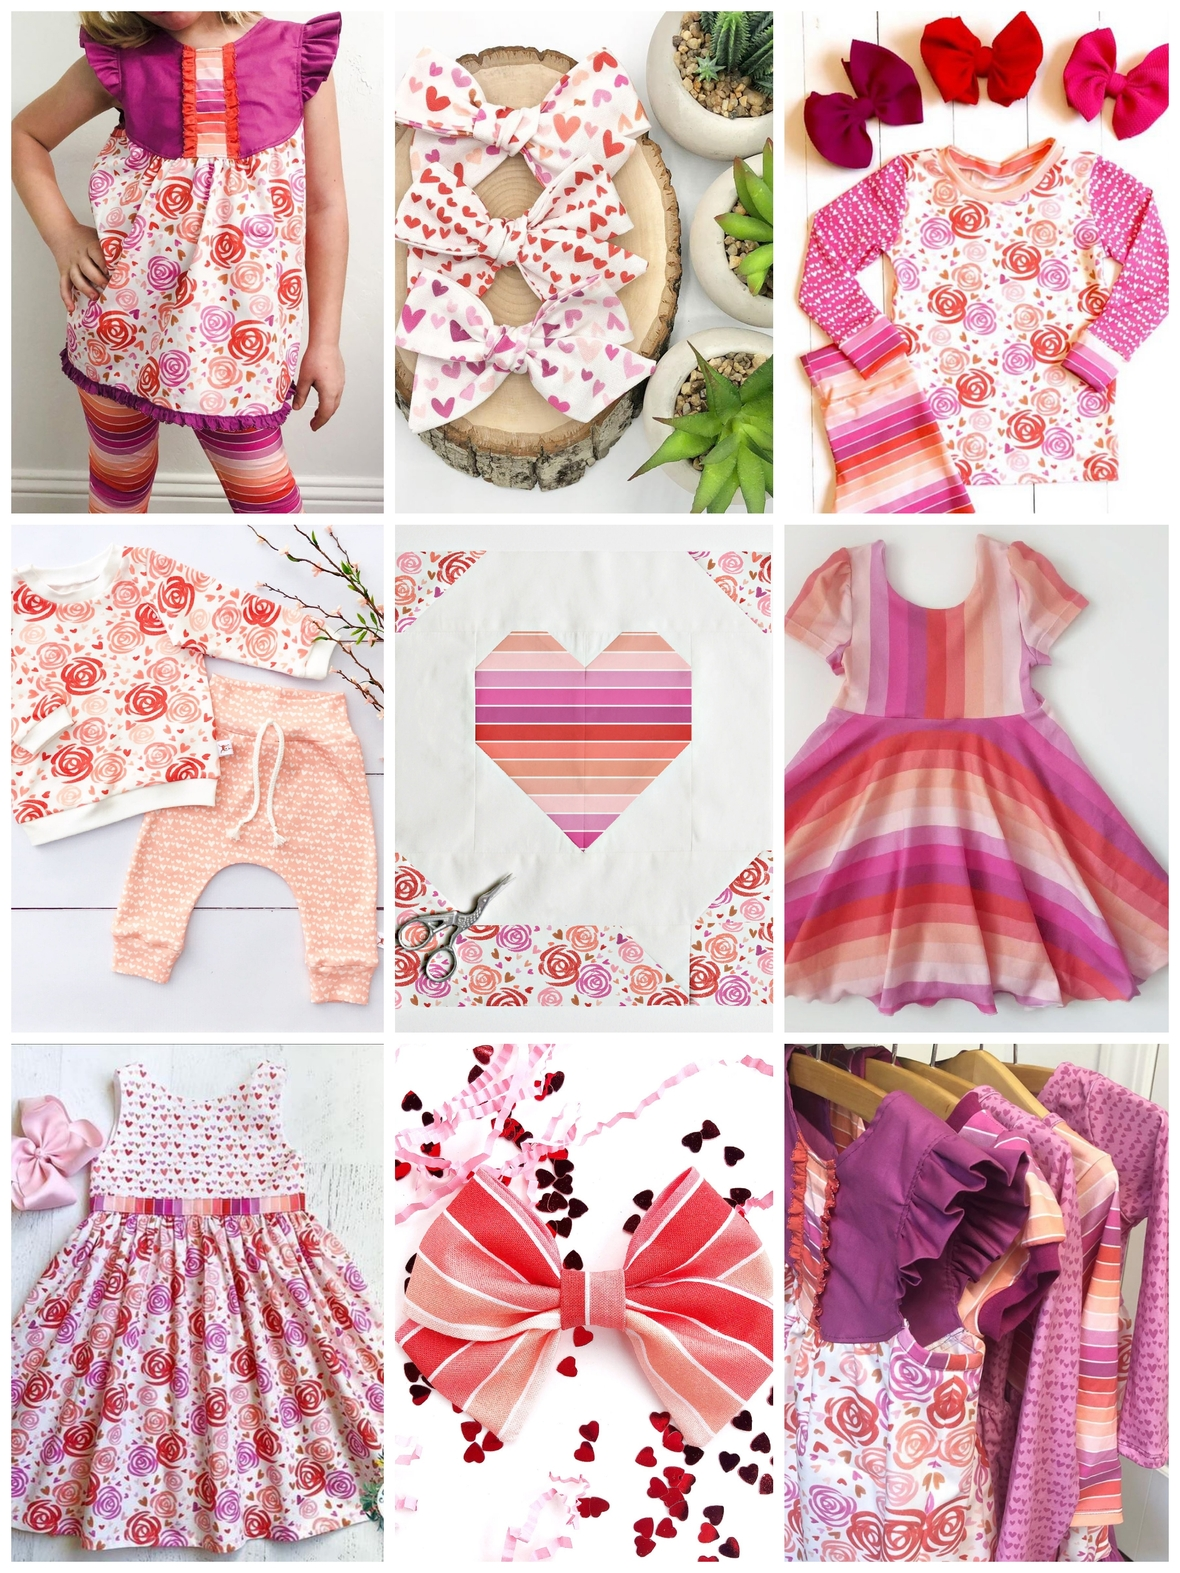 Sweetheart Fabric Maker Instpiration for Valentine Day